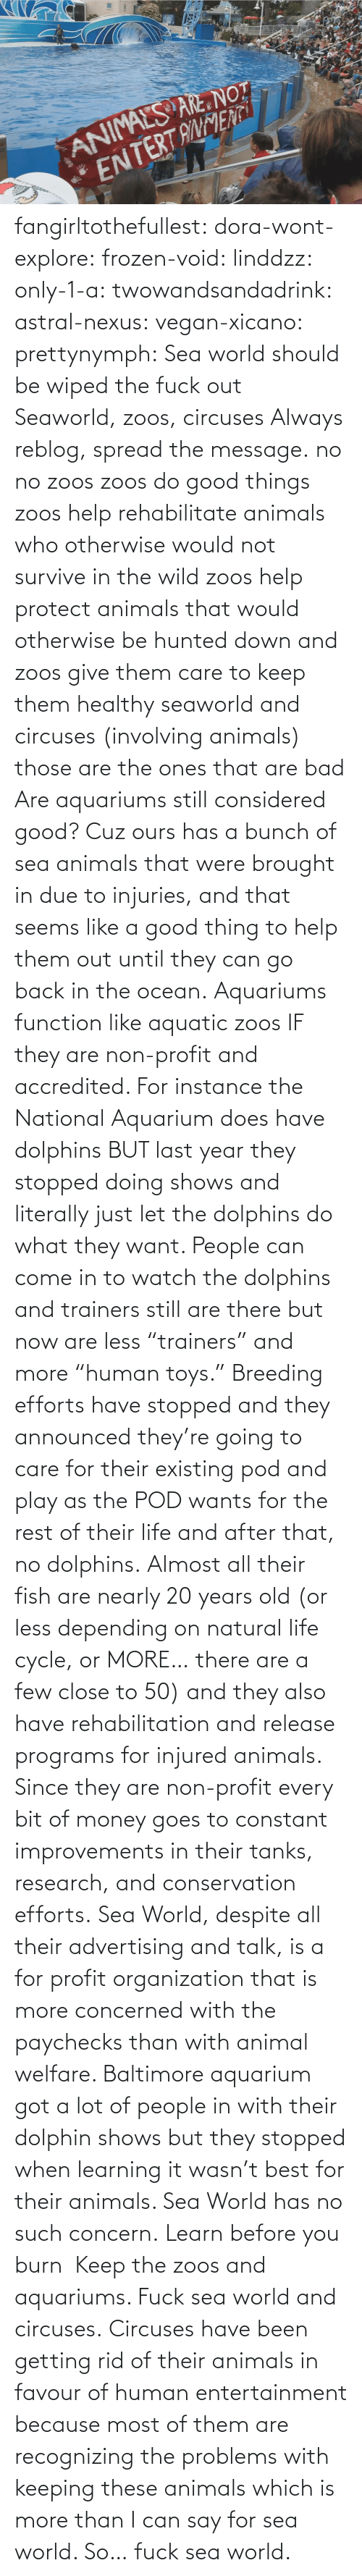 "A Bunch Of: fangirltothefullest:  dora-wont-explore:  frozen-void:  linddzz:  only-1-a:  twowandsandadrink:  astral-nexus:  vegan-xicano:  prettynymph:  Sea world should be wiped the fuck out  Seaworld, zoos, circuses  Always reblog, spread the message.  no no zoos zoos do good things zoos help rehabilitate animals who otherwise would not survive in the wild zoos help protect animals that would otherwise be hunted down and zoos give them care to keep them healthy seaworld and circuses (involving animals) those are the ones that are bad  Are aquariums still considered good? Cuz ours has a bunch of sea animals that were brought in due to injuries, and that seems like a good thing to help them out until they can go back in the ocean.  Aquariums function like aquatic zoos IF they are non-profit and accredited. For instance the National Aquarium does have dolphins BUT last year they stopped doing shows and literally just let the dolphins do what they want. People can come in to watch the dolphins and trainers still are there but now are less ""trainers"" and more ""human toys."" Breeding efforts have stopped and they announced they're going to care for their existing pod and play as the POD wants for the rest of their life and after that, no dolphins. Almost all their fish are nearly 20 years old (or less depending on natural life cycle, or MORE… there are a few close to 50) and they also have rehabilitation and release programs for injured animals. Since they are non-profit every bit of money goes to constant improvements in their tanks, research, and conservation efforts. Sea World, despite all their advertising and talk, is a for profit organization that is more concerned with the paychecks than with animal welfare. Baltimore aquarium got a lot of people in with their dolphin shows but they stopped when learning it wasn't best for their animals. Sea World has no such concern.  Learn before you burn   Keep the zoos and aquariums. Fuck sea world and circuses.  Circuses have been getting rid of  their animals in favour of human entertainment because most of them are recognizing the problems with keeping these animals which is more than I can say for sea world. So… fuck sea world."